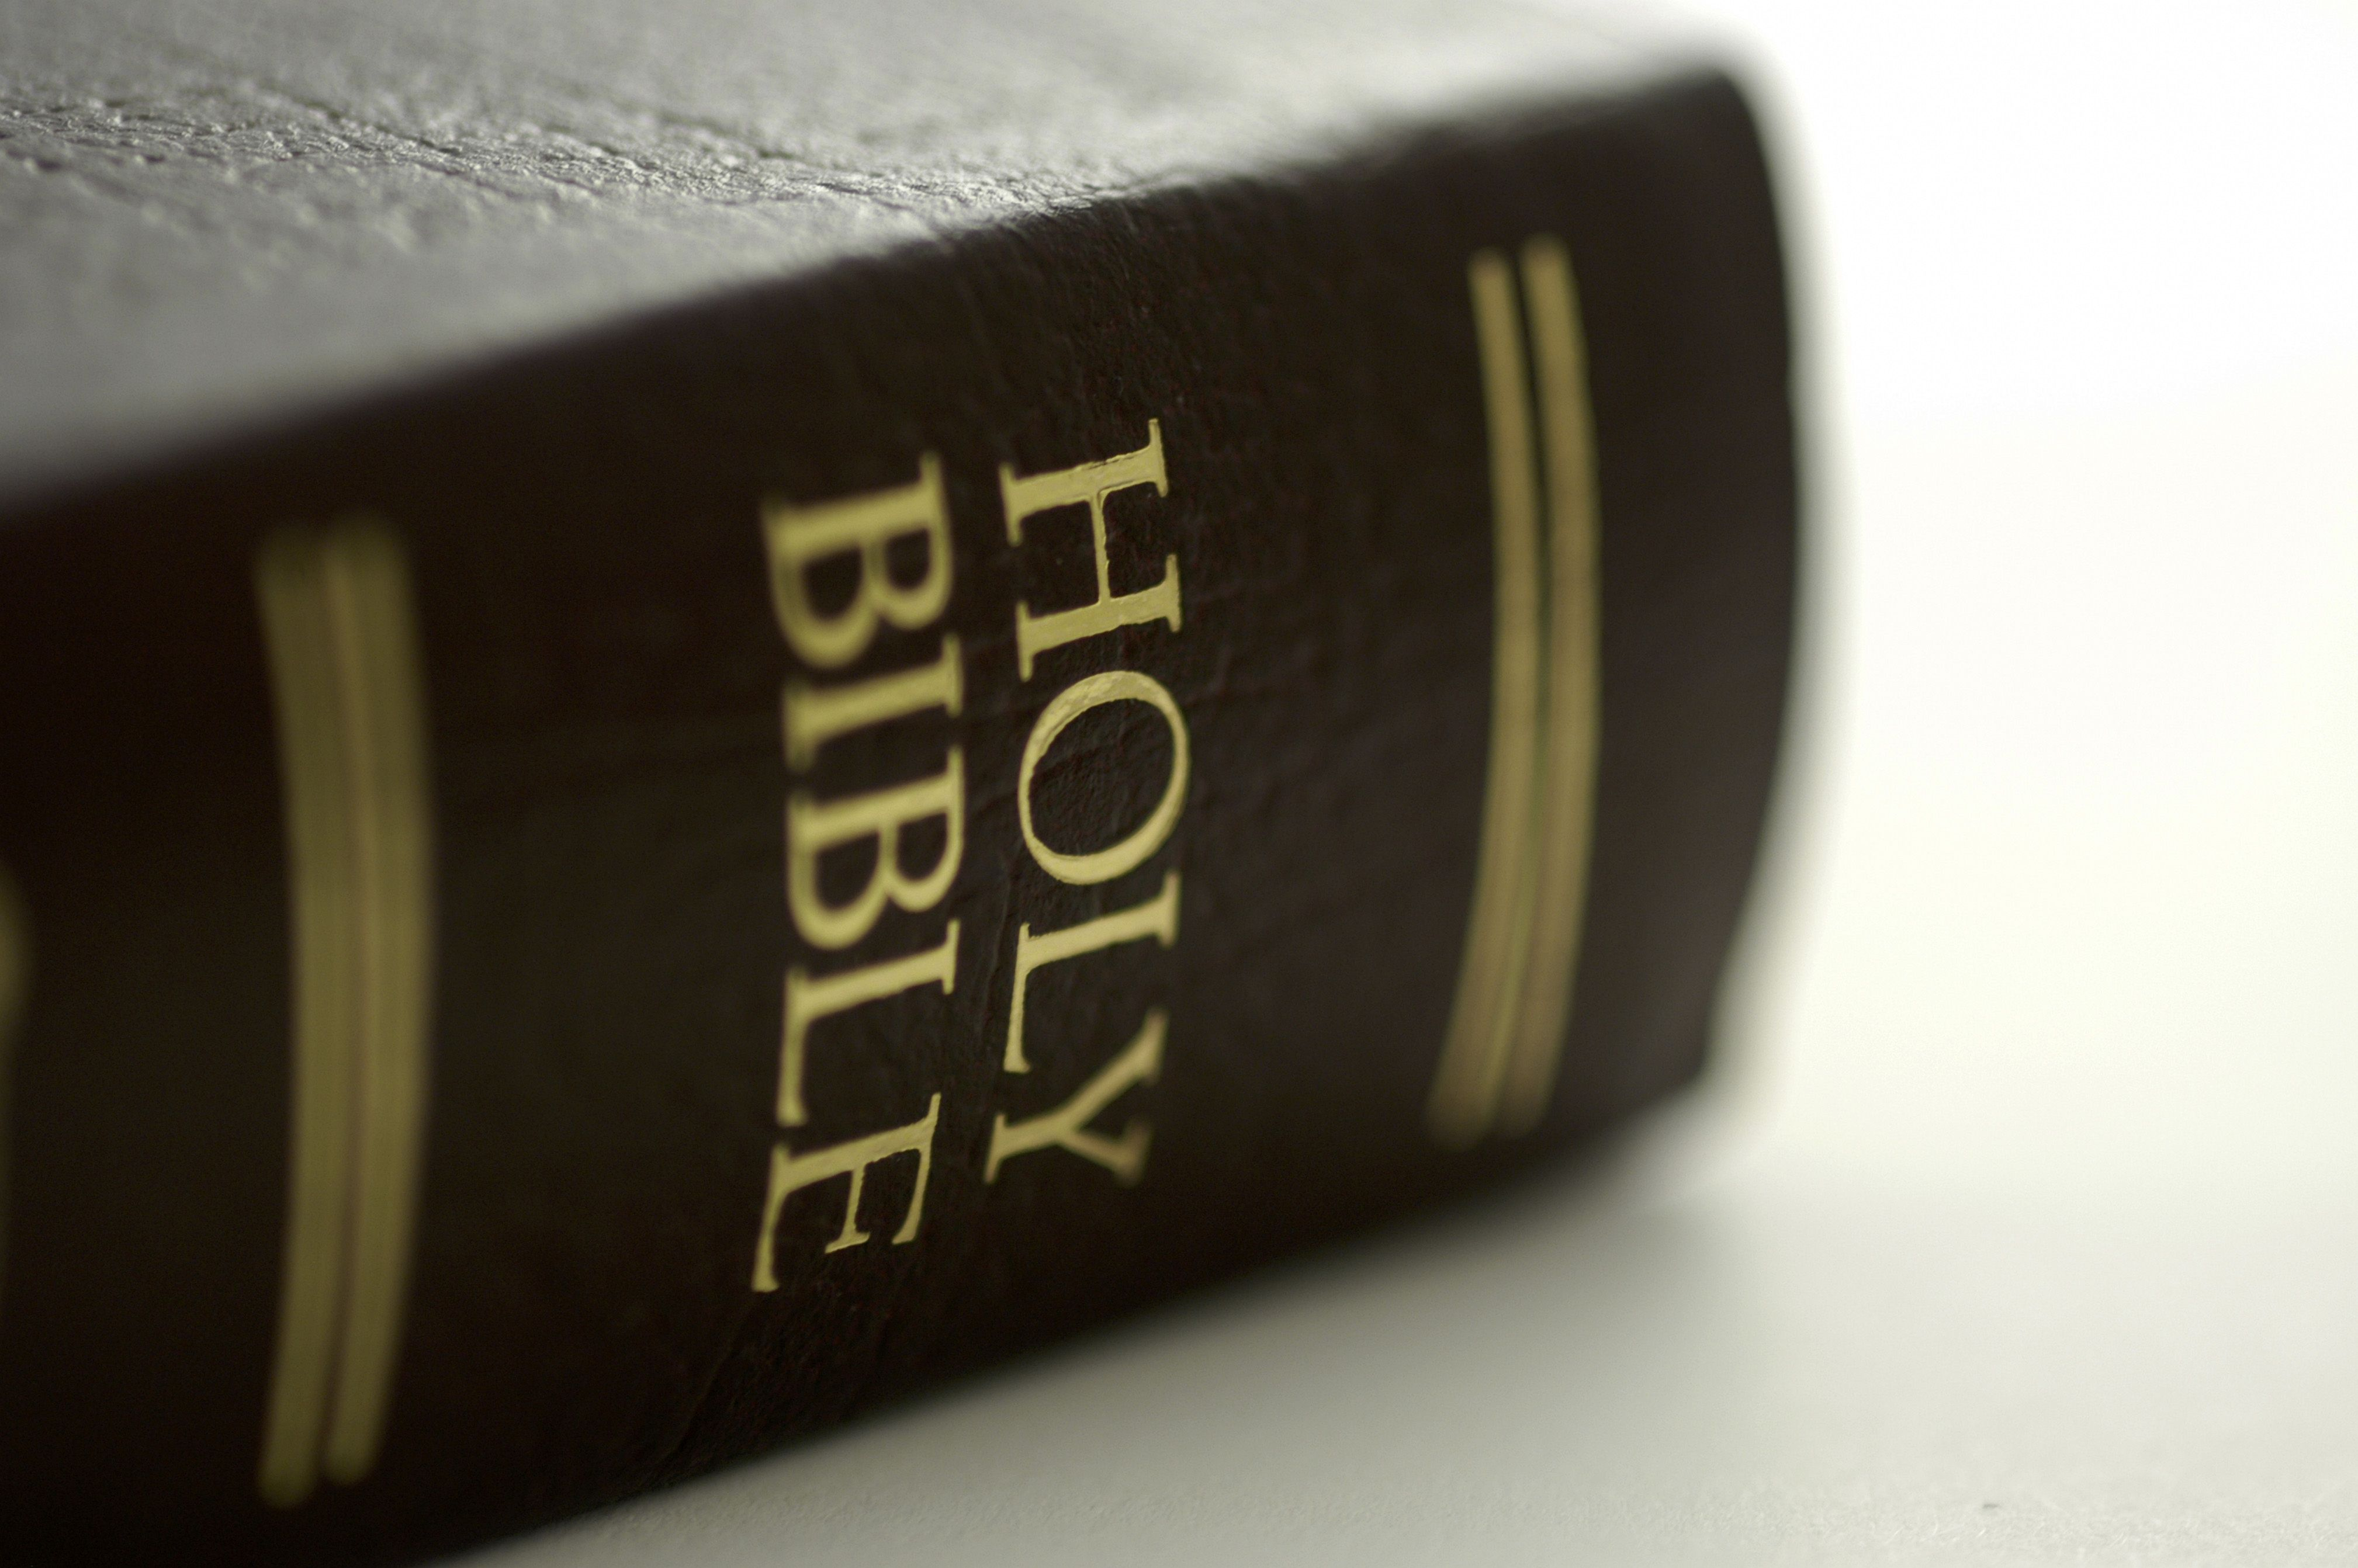 Teacher Under Investigation For Handing Out Bible Cookies